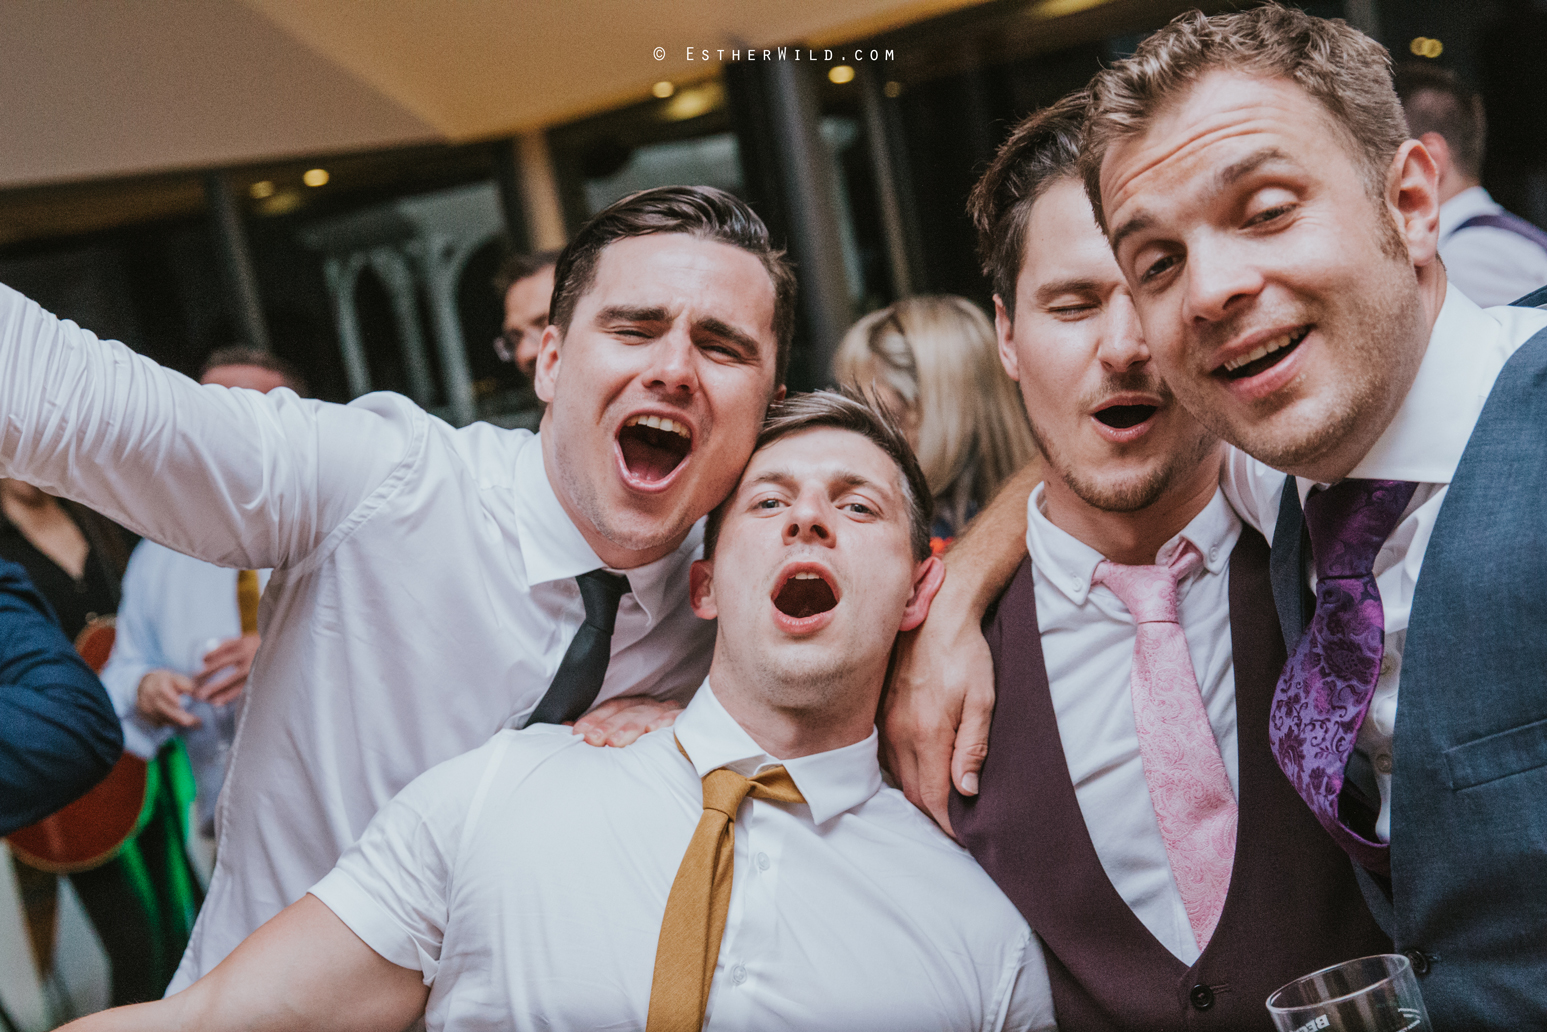 The_BoatHouse_Wedding_Venue_Ormesby_Norfolk_Broads_Boat_Wedding_Photography_Esther_Wild_Photographer_IMG_3843.jpg